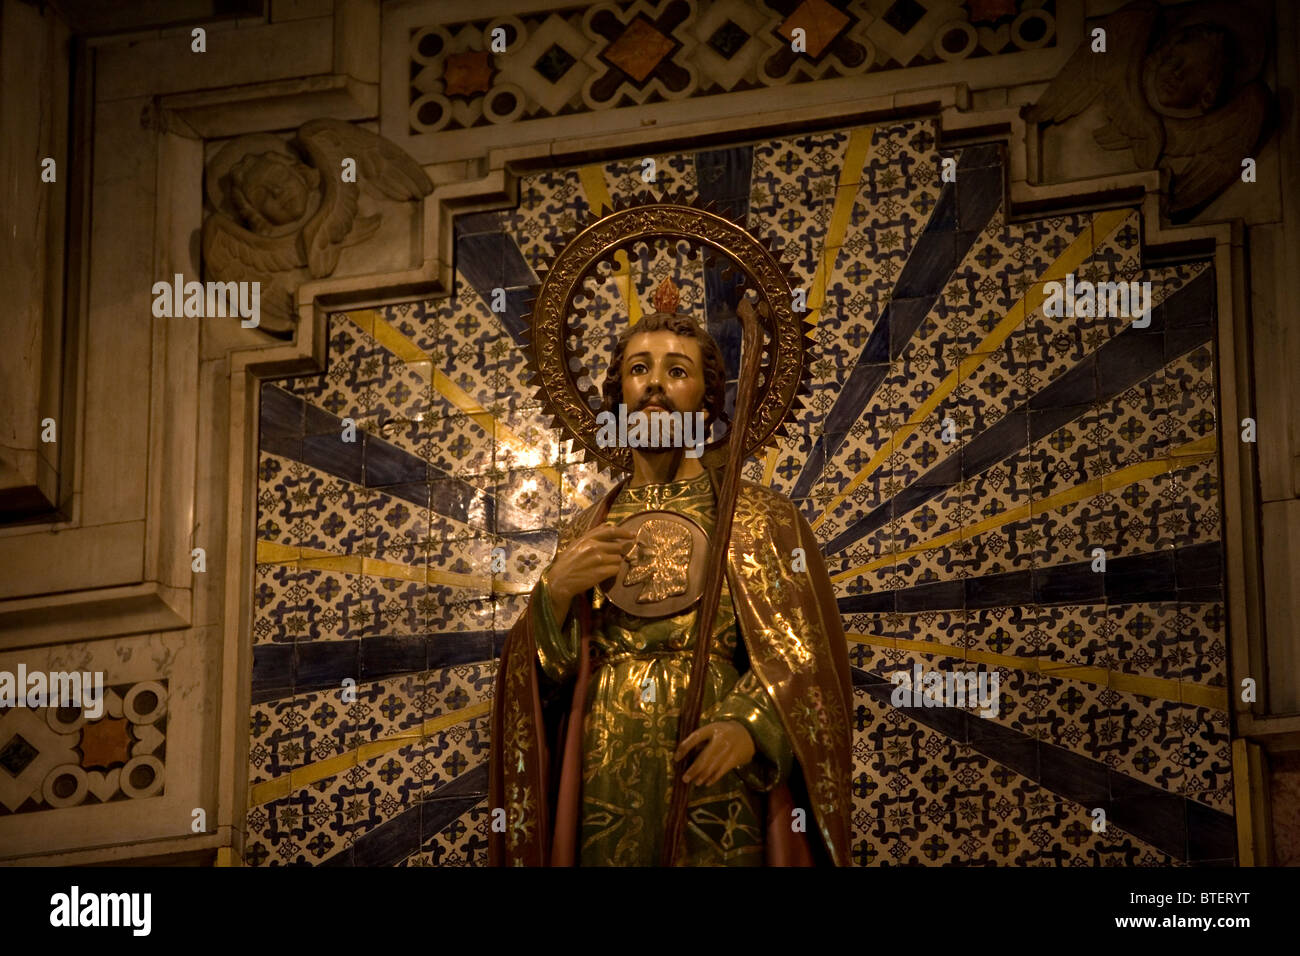 A sculpture of Saint Jude Thaddeus is displayed in the main altar of San Hipolito's church in Mexico City Stock Photo